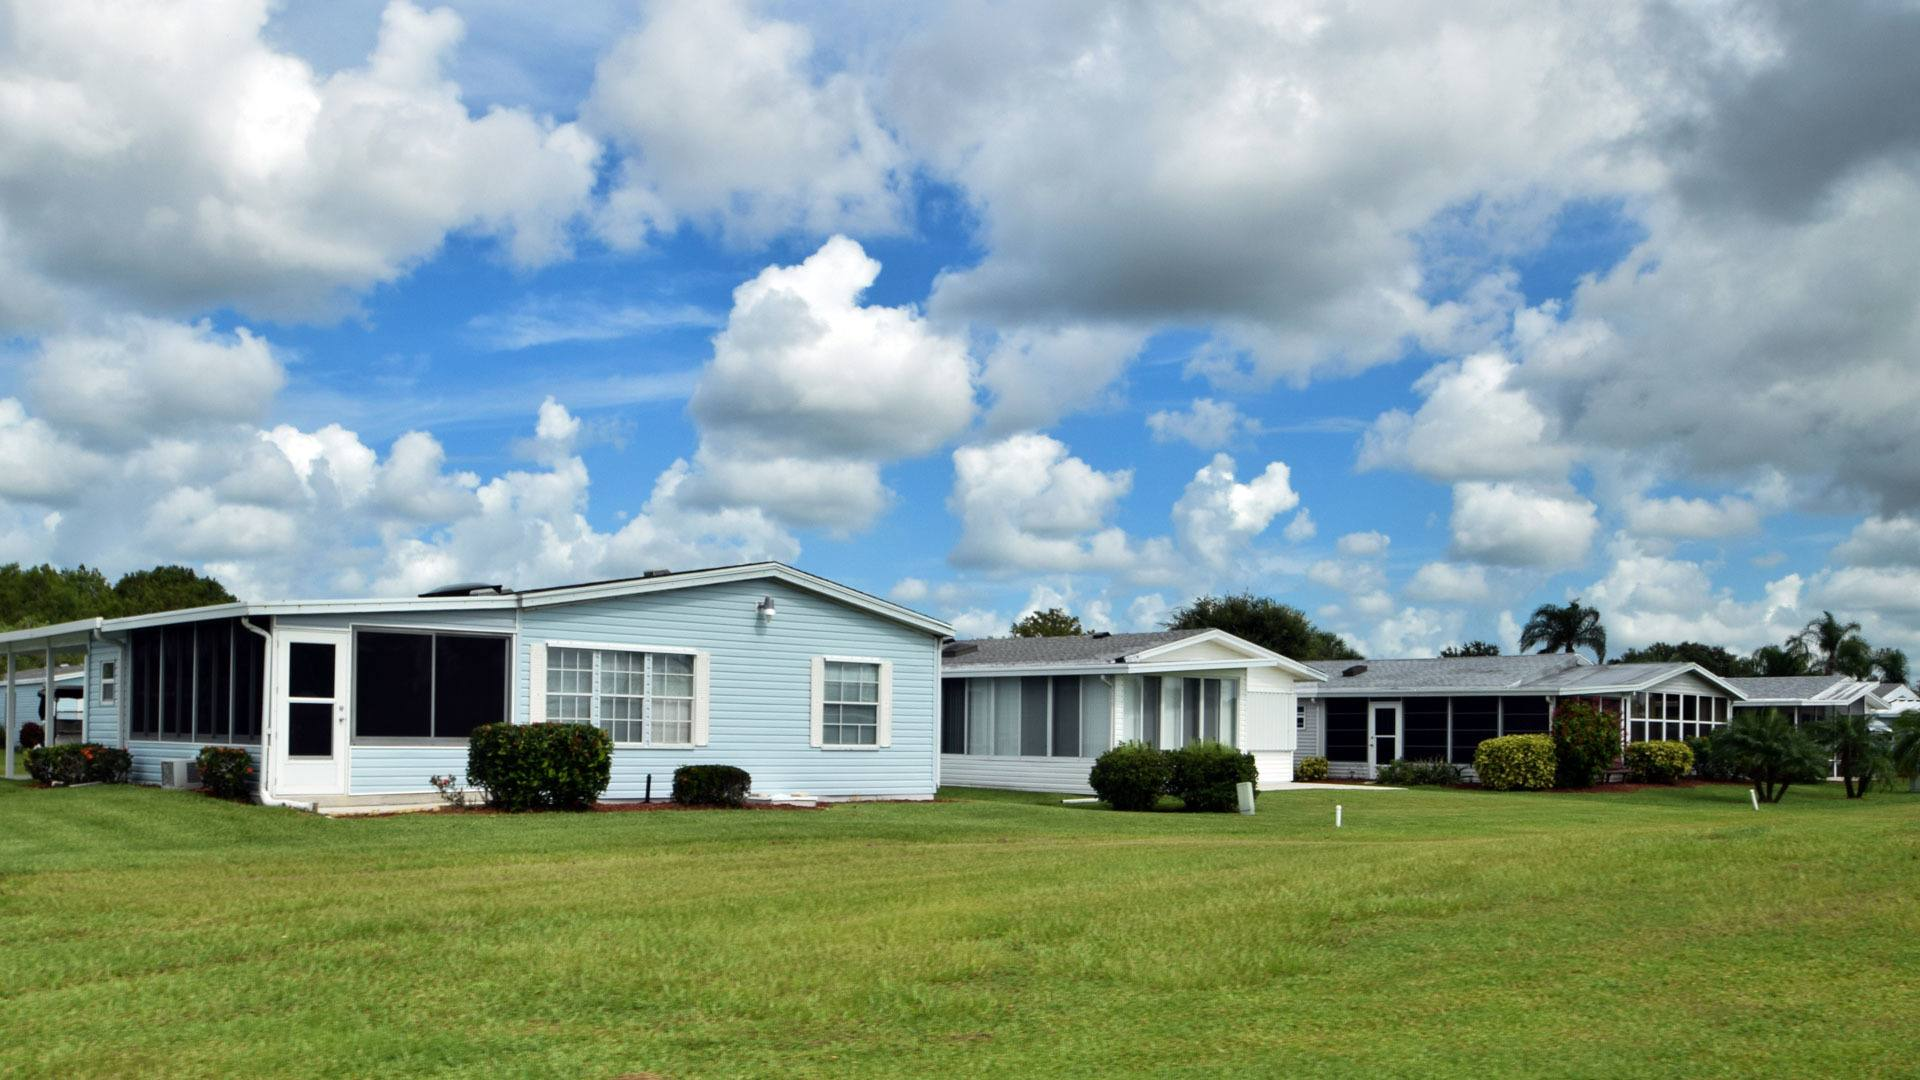 Savanna Club 55+ Manufactured Homes Community Residences in St. Lucie, FL